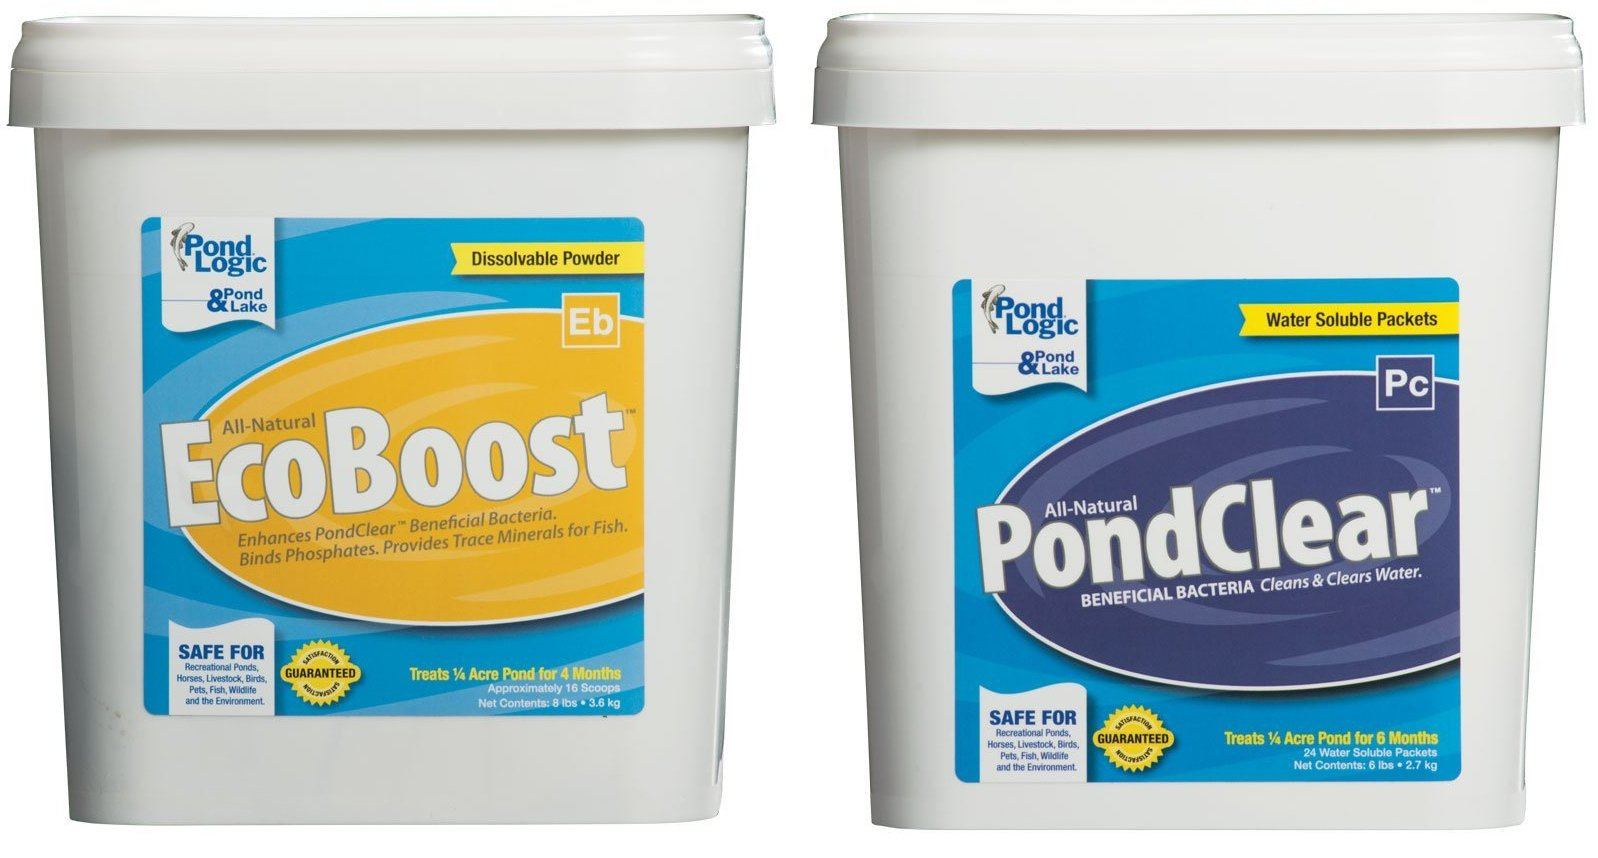 Pond Logic PondClear, 24 Pkts & EcoBoost 16 Scoops Combo by Pond Logic